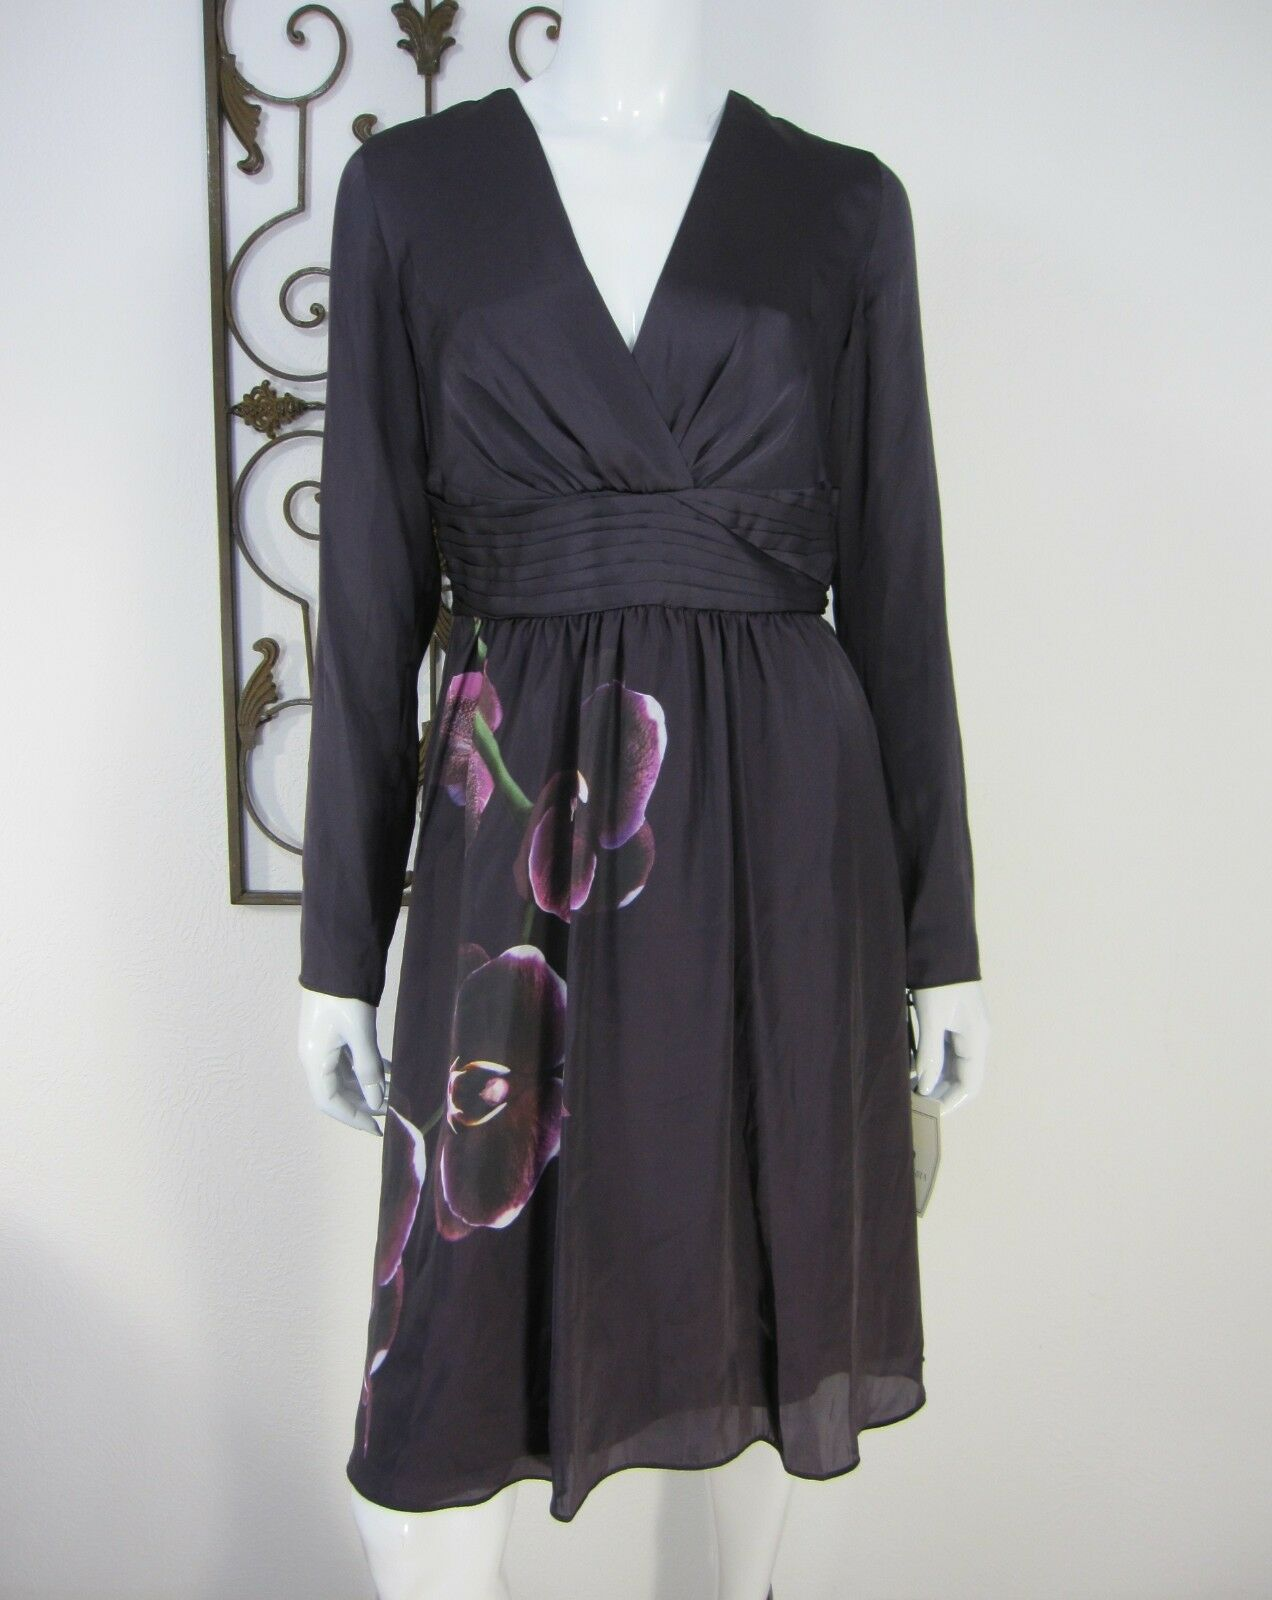 ALTUZARRA FOR TARGET NWT LONG SLEEVE DRESS SIZE 8 PURPLE FLORAL